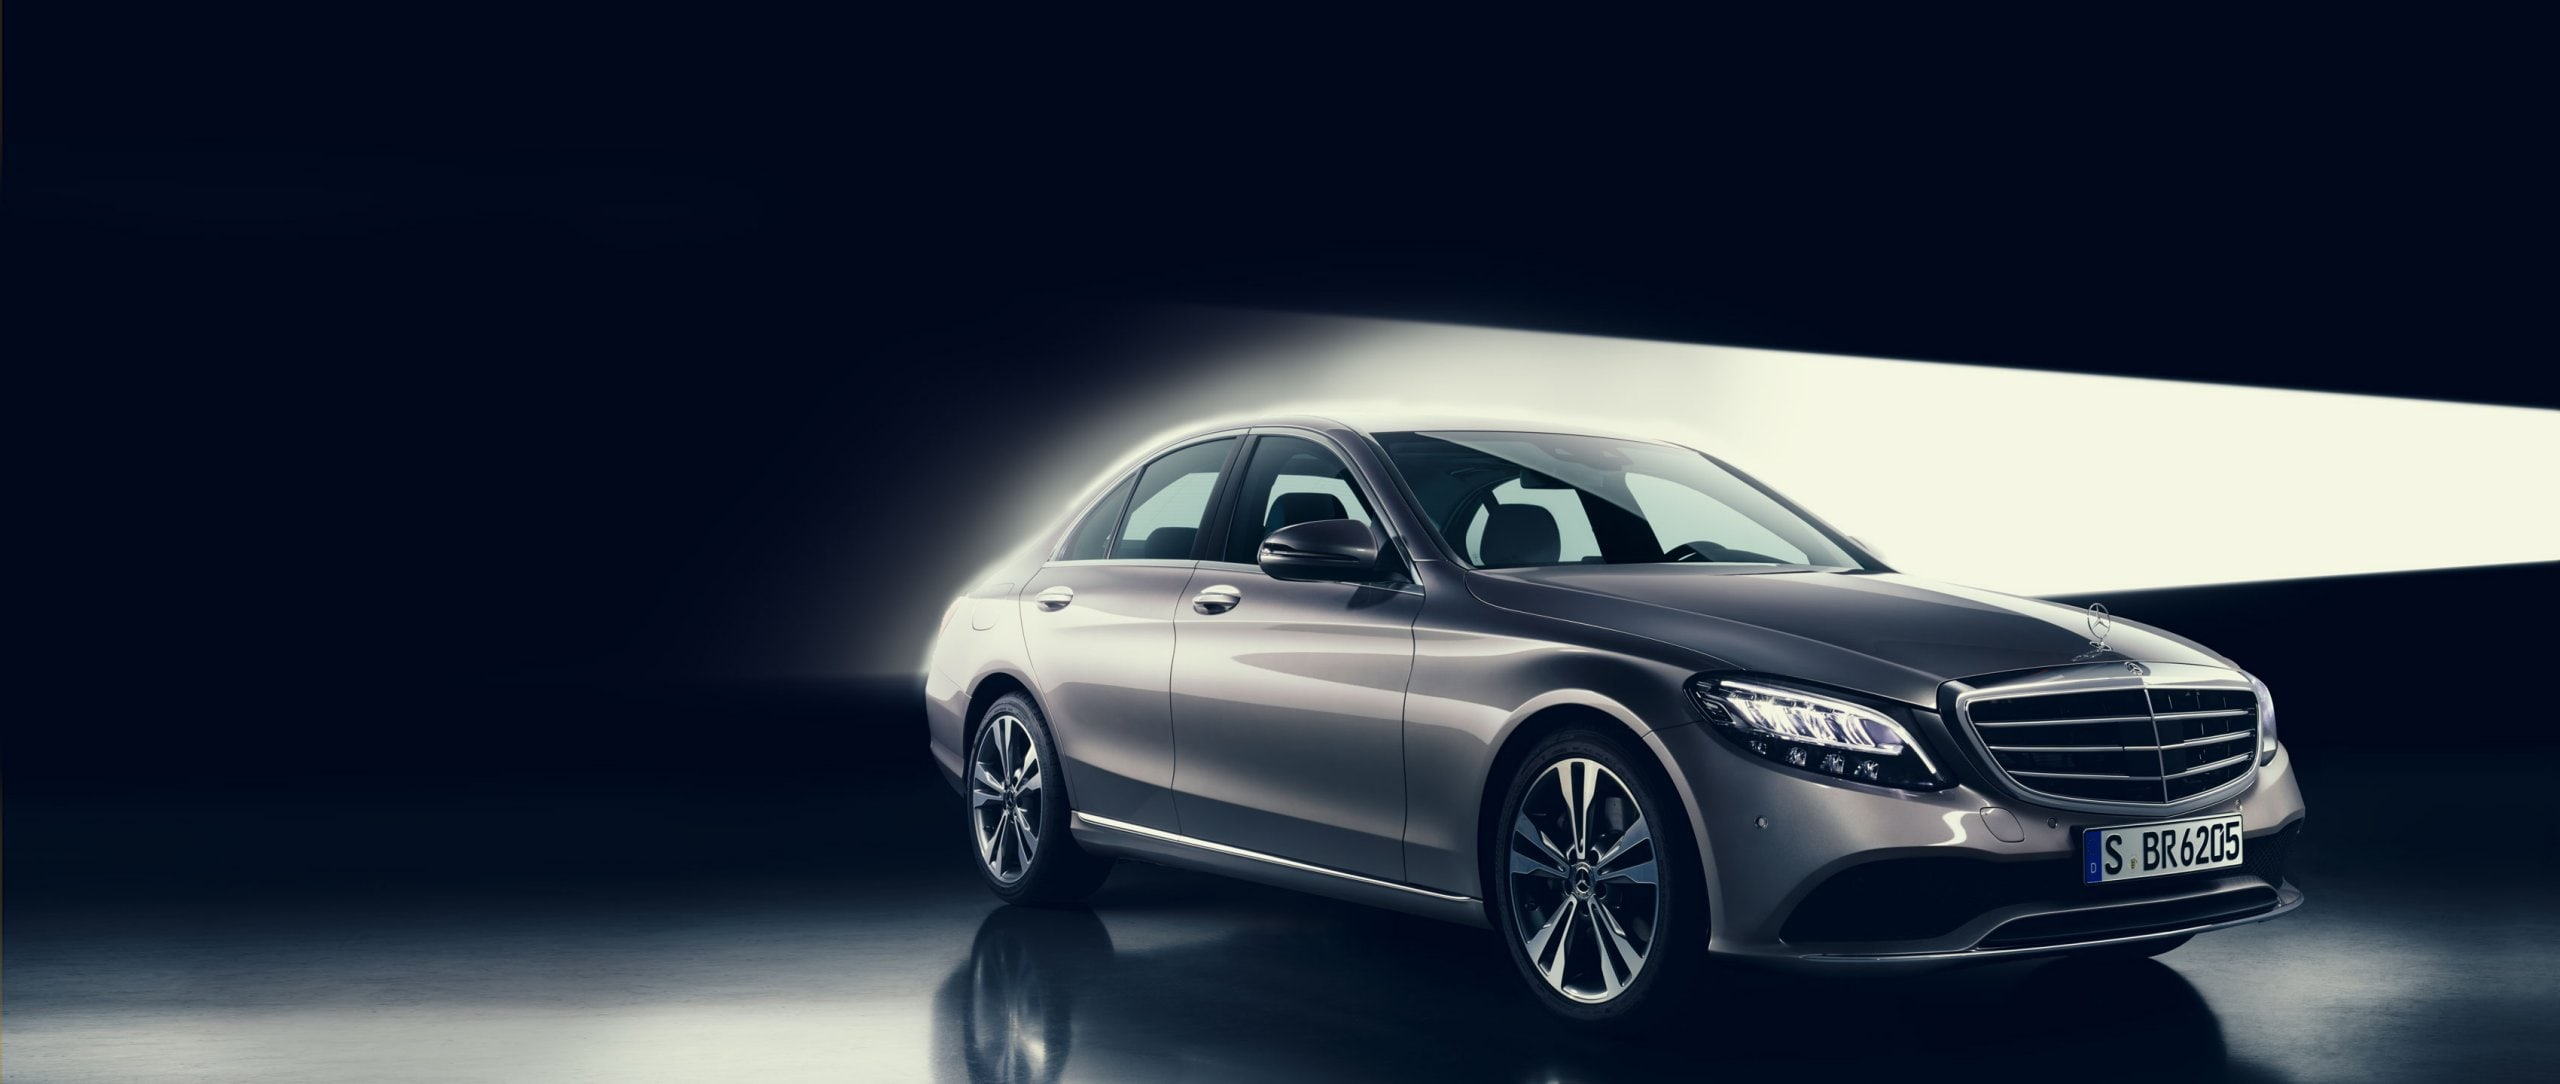 On the occasion of its 25th anniversary, the C-Class is receiving many new updates.